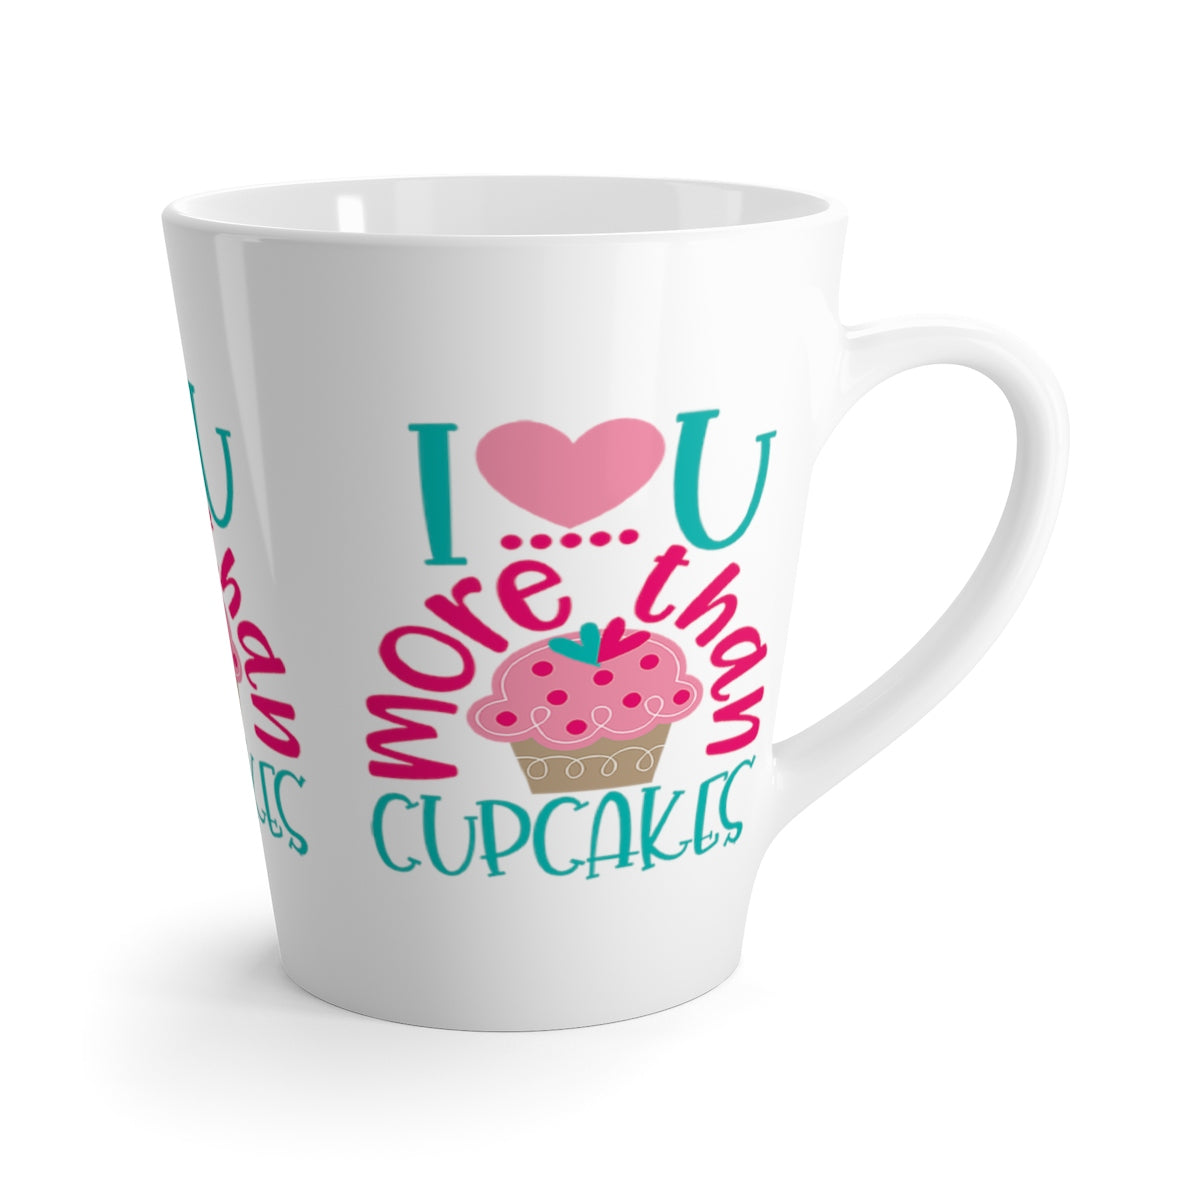 d66e8affb85af Latte I LOVE YOU MORE THAN CUPCAKES Valentines Day 12 oz Gift Present  Coffee Lover Unisex